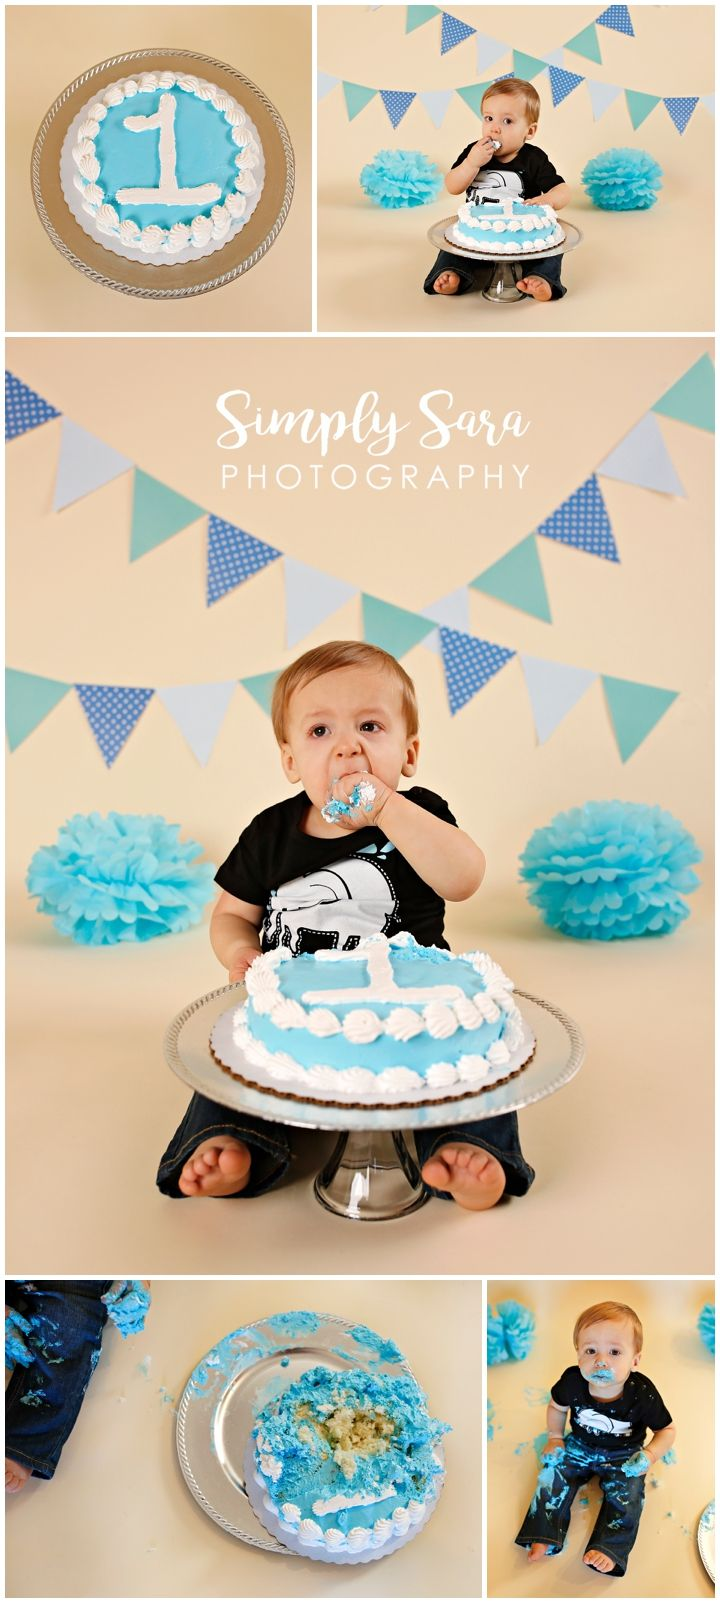 1 Year Old Boy Photo Shoot Ideas & Poses - Indoor Session ...